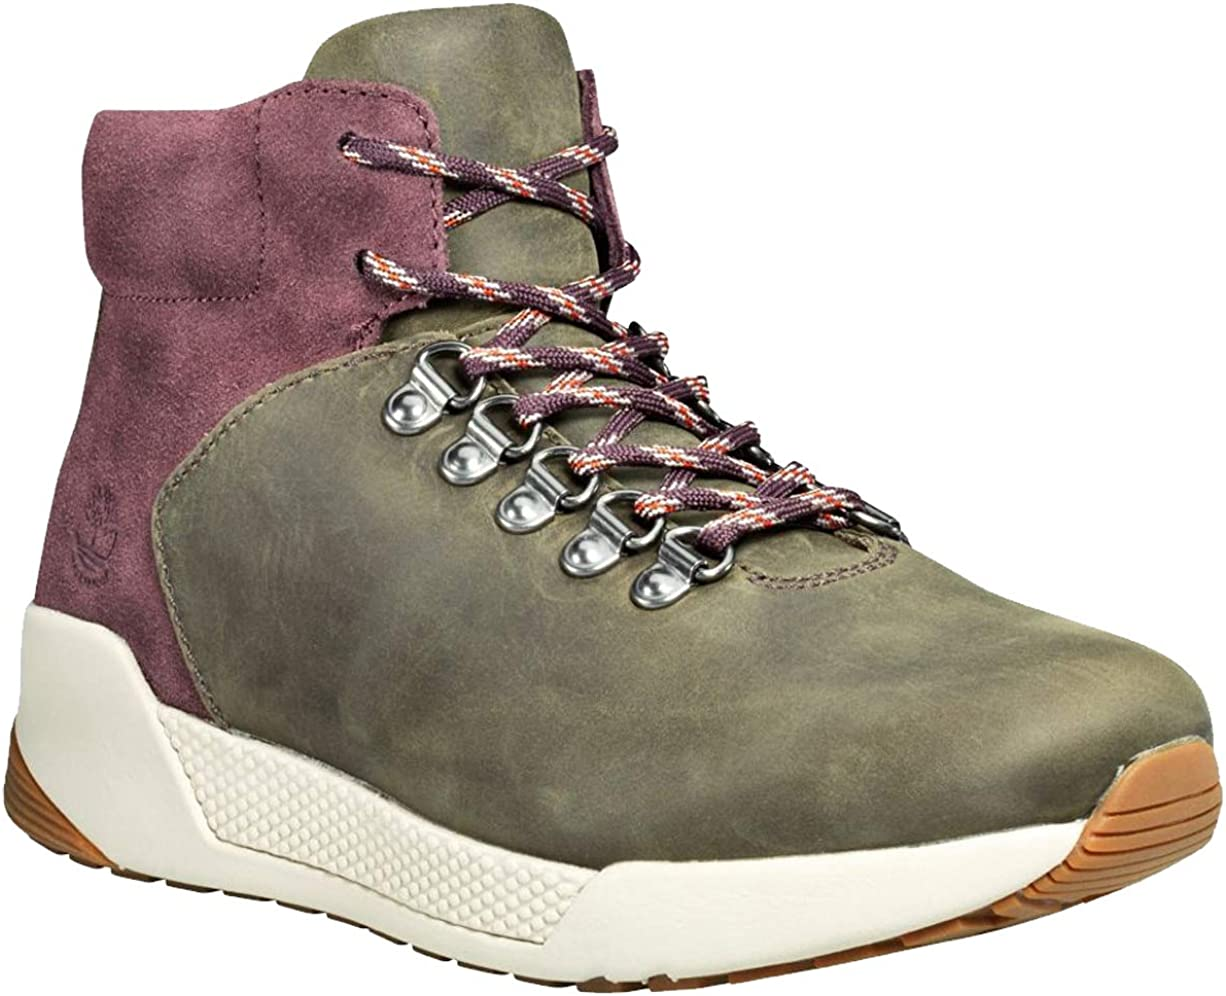 Timberland Kiri Up Waterproof Hiker